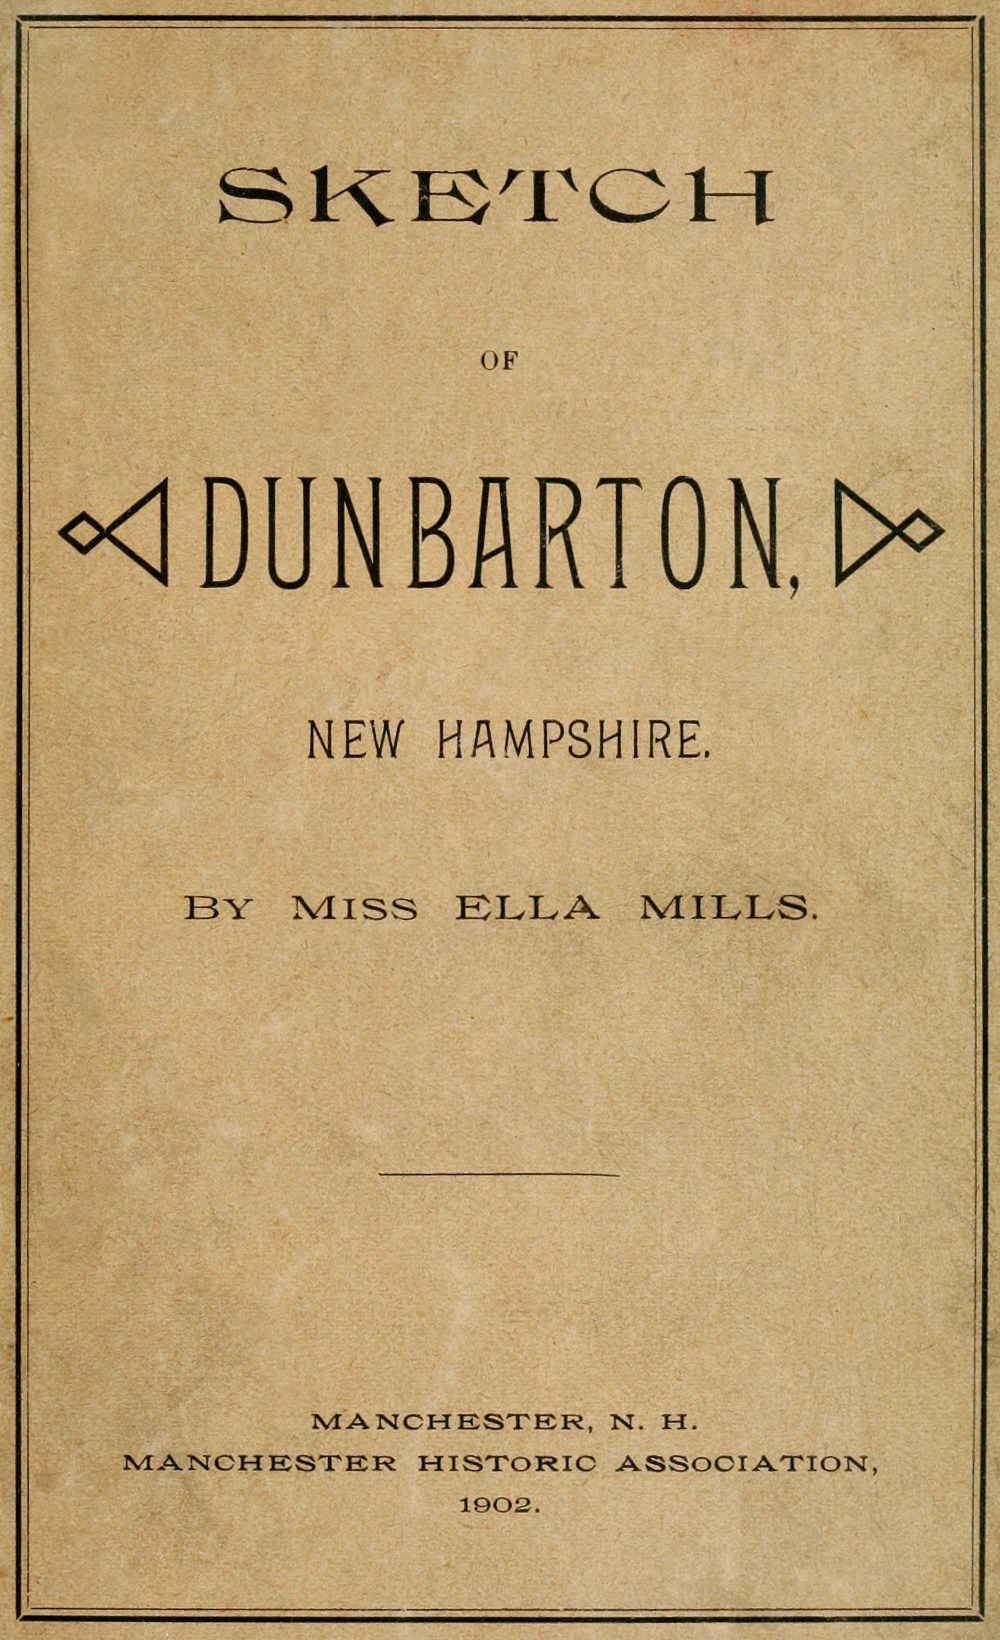 The project gutenberg ebook of sketch of dunbarton new hampshire sketch of fandeluxe Gallery